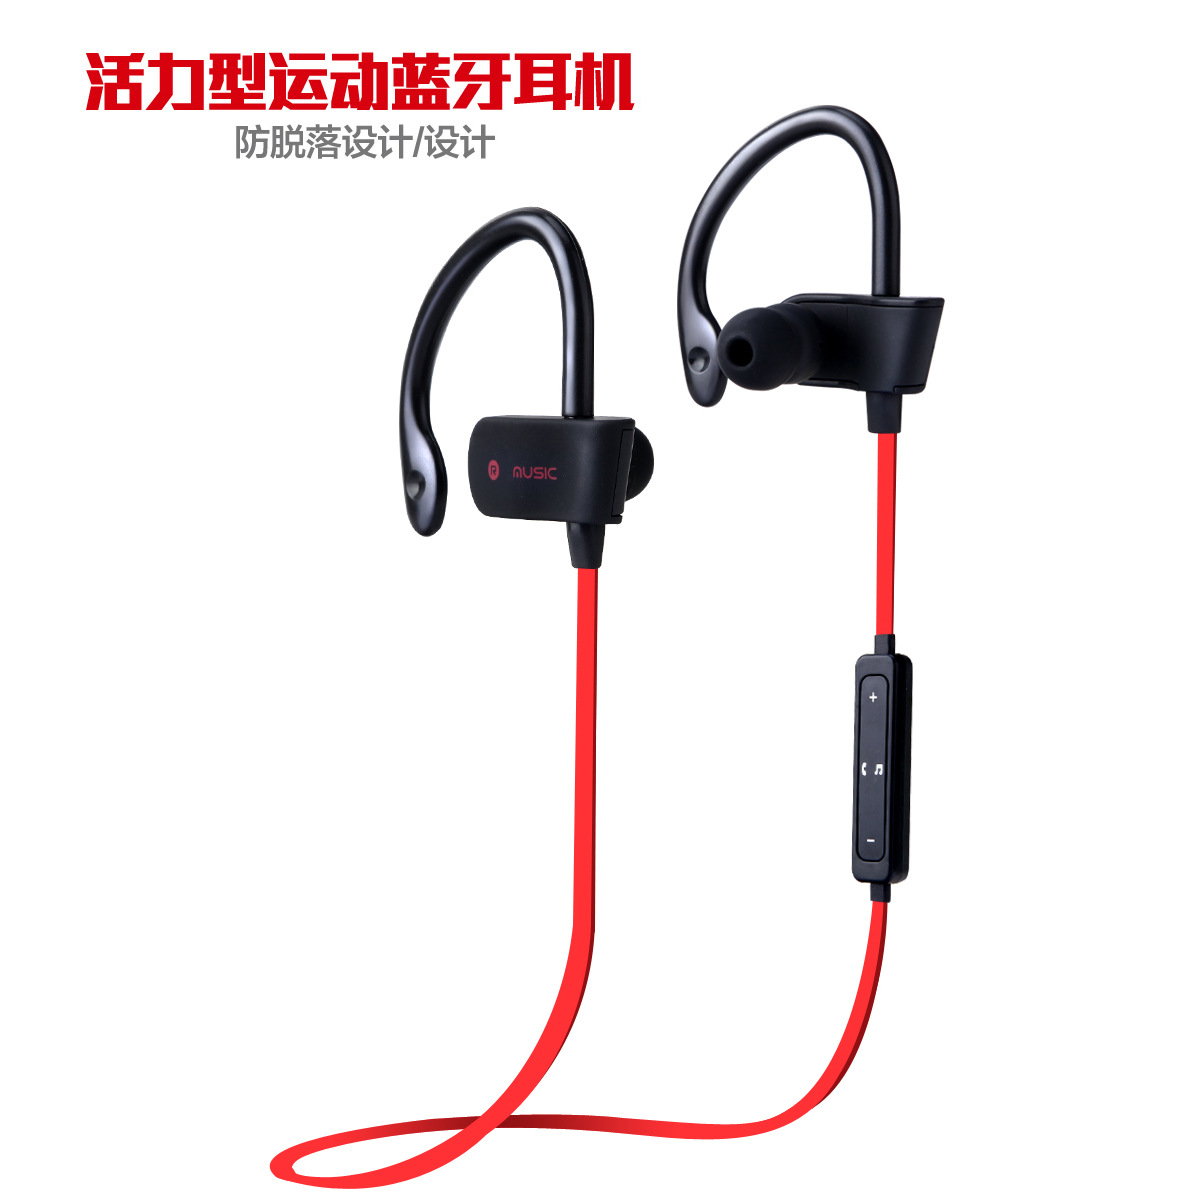 Fashion Bluetooth Earphone For Amazon Fire Kids Edition Wireless Earbuds Headsets Microphone 2018 New fone de ouvido bluetooth